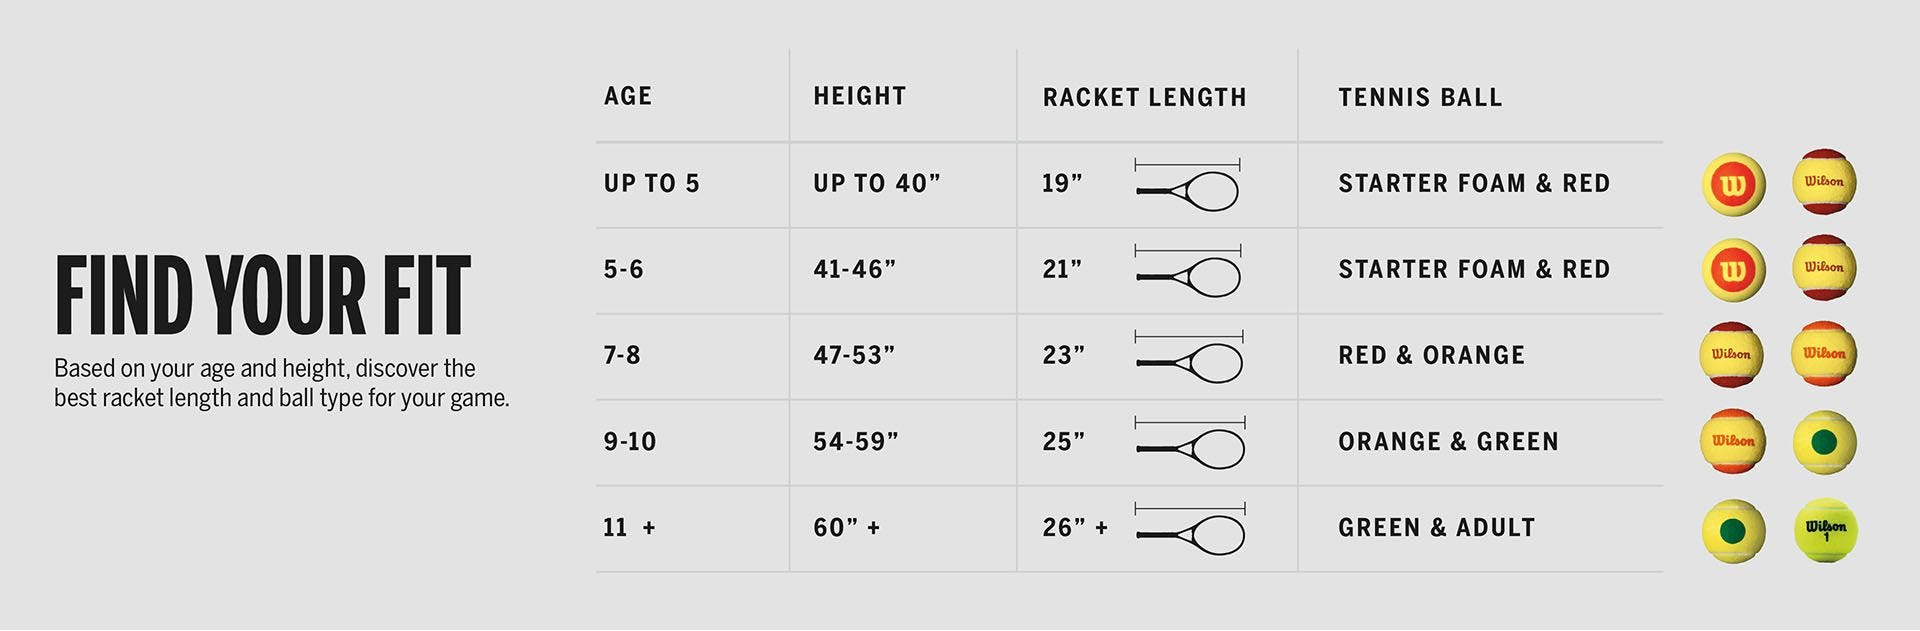 Find Your Fit - Junior Racket Guide Chart